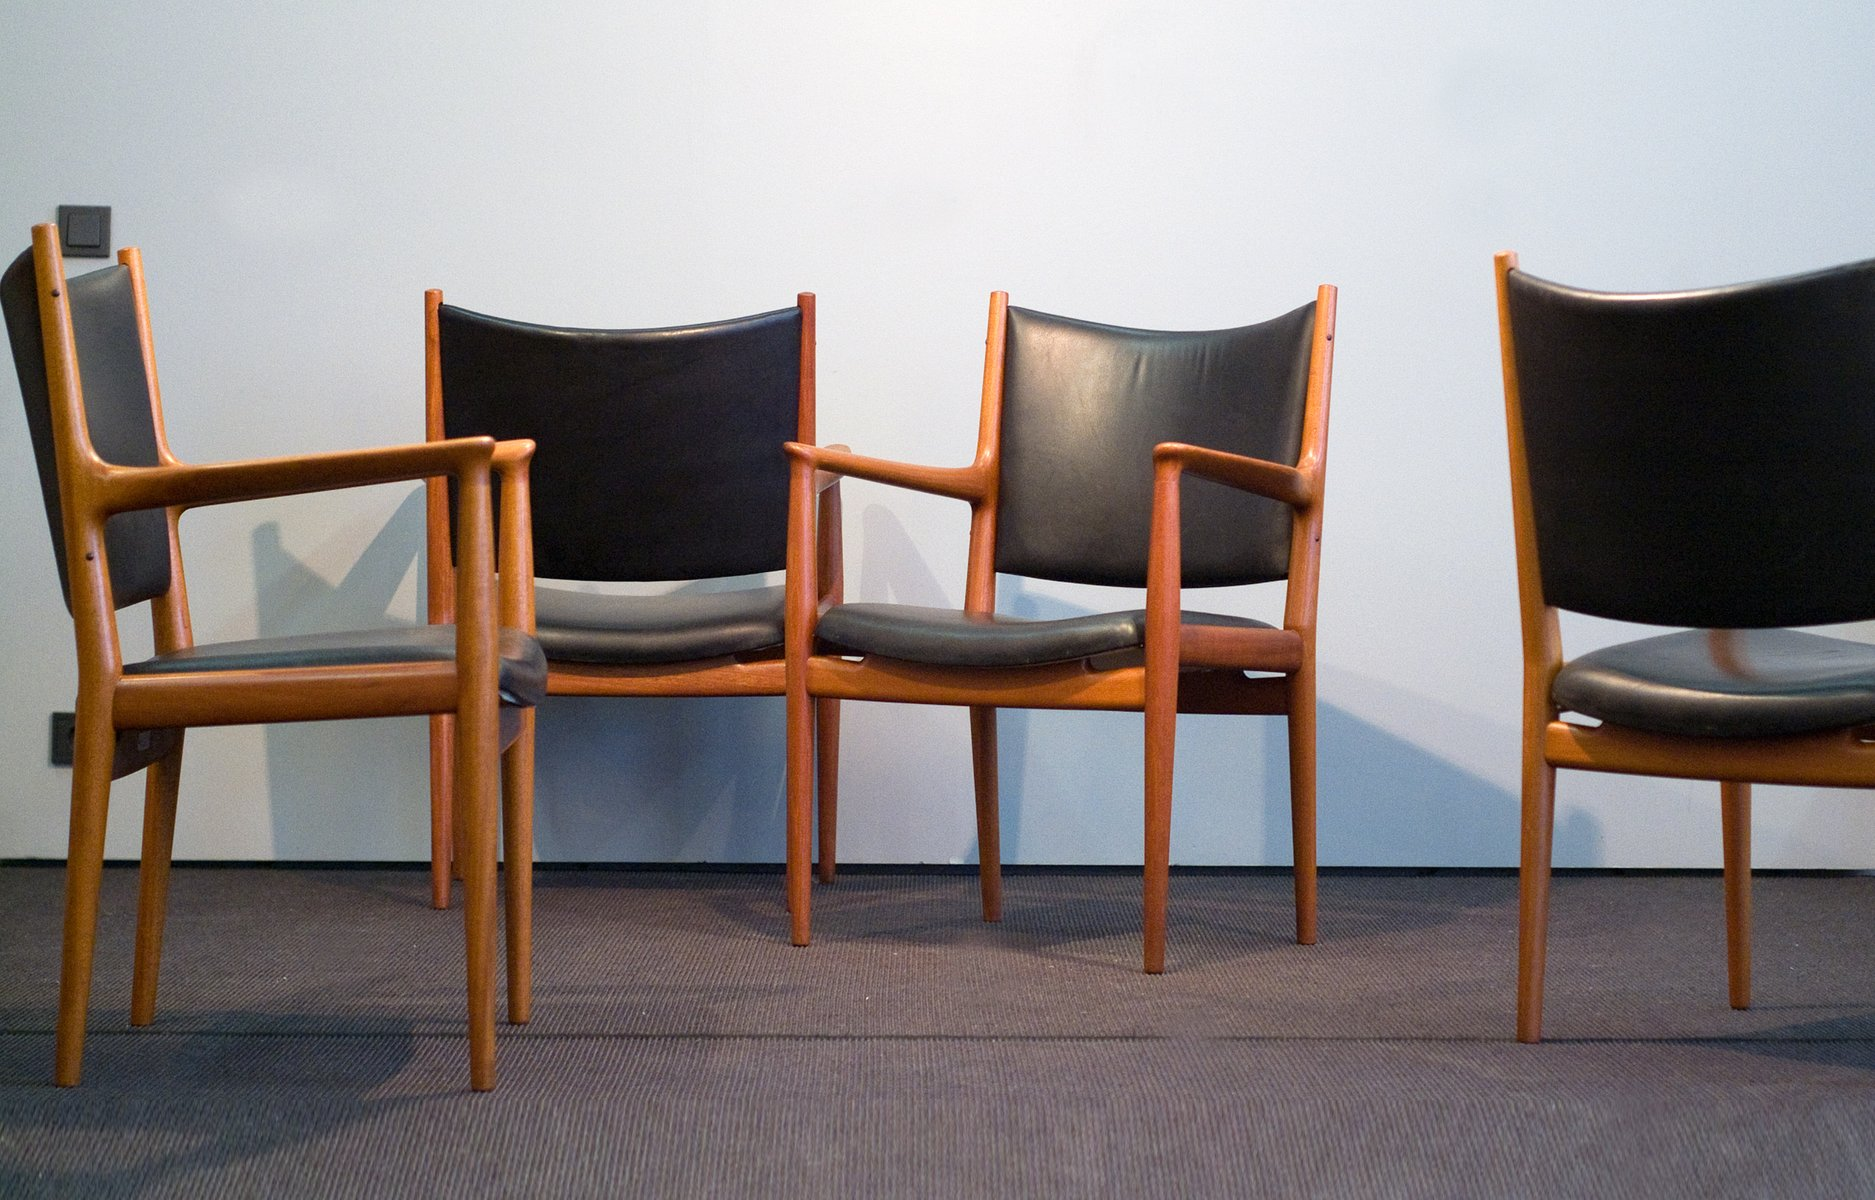 jh 513 mahagoni leder st hle von hans j wegner f r johannes hansen 1960er 8er set bei. Black Bedroom Furniture Sets. Home Design Ideas